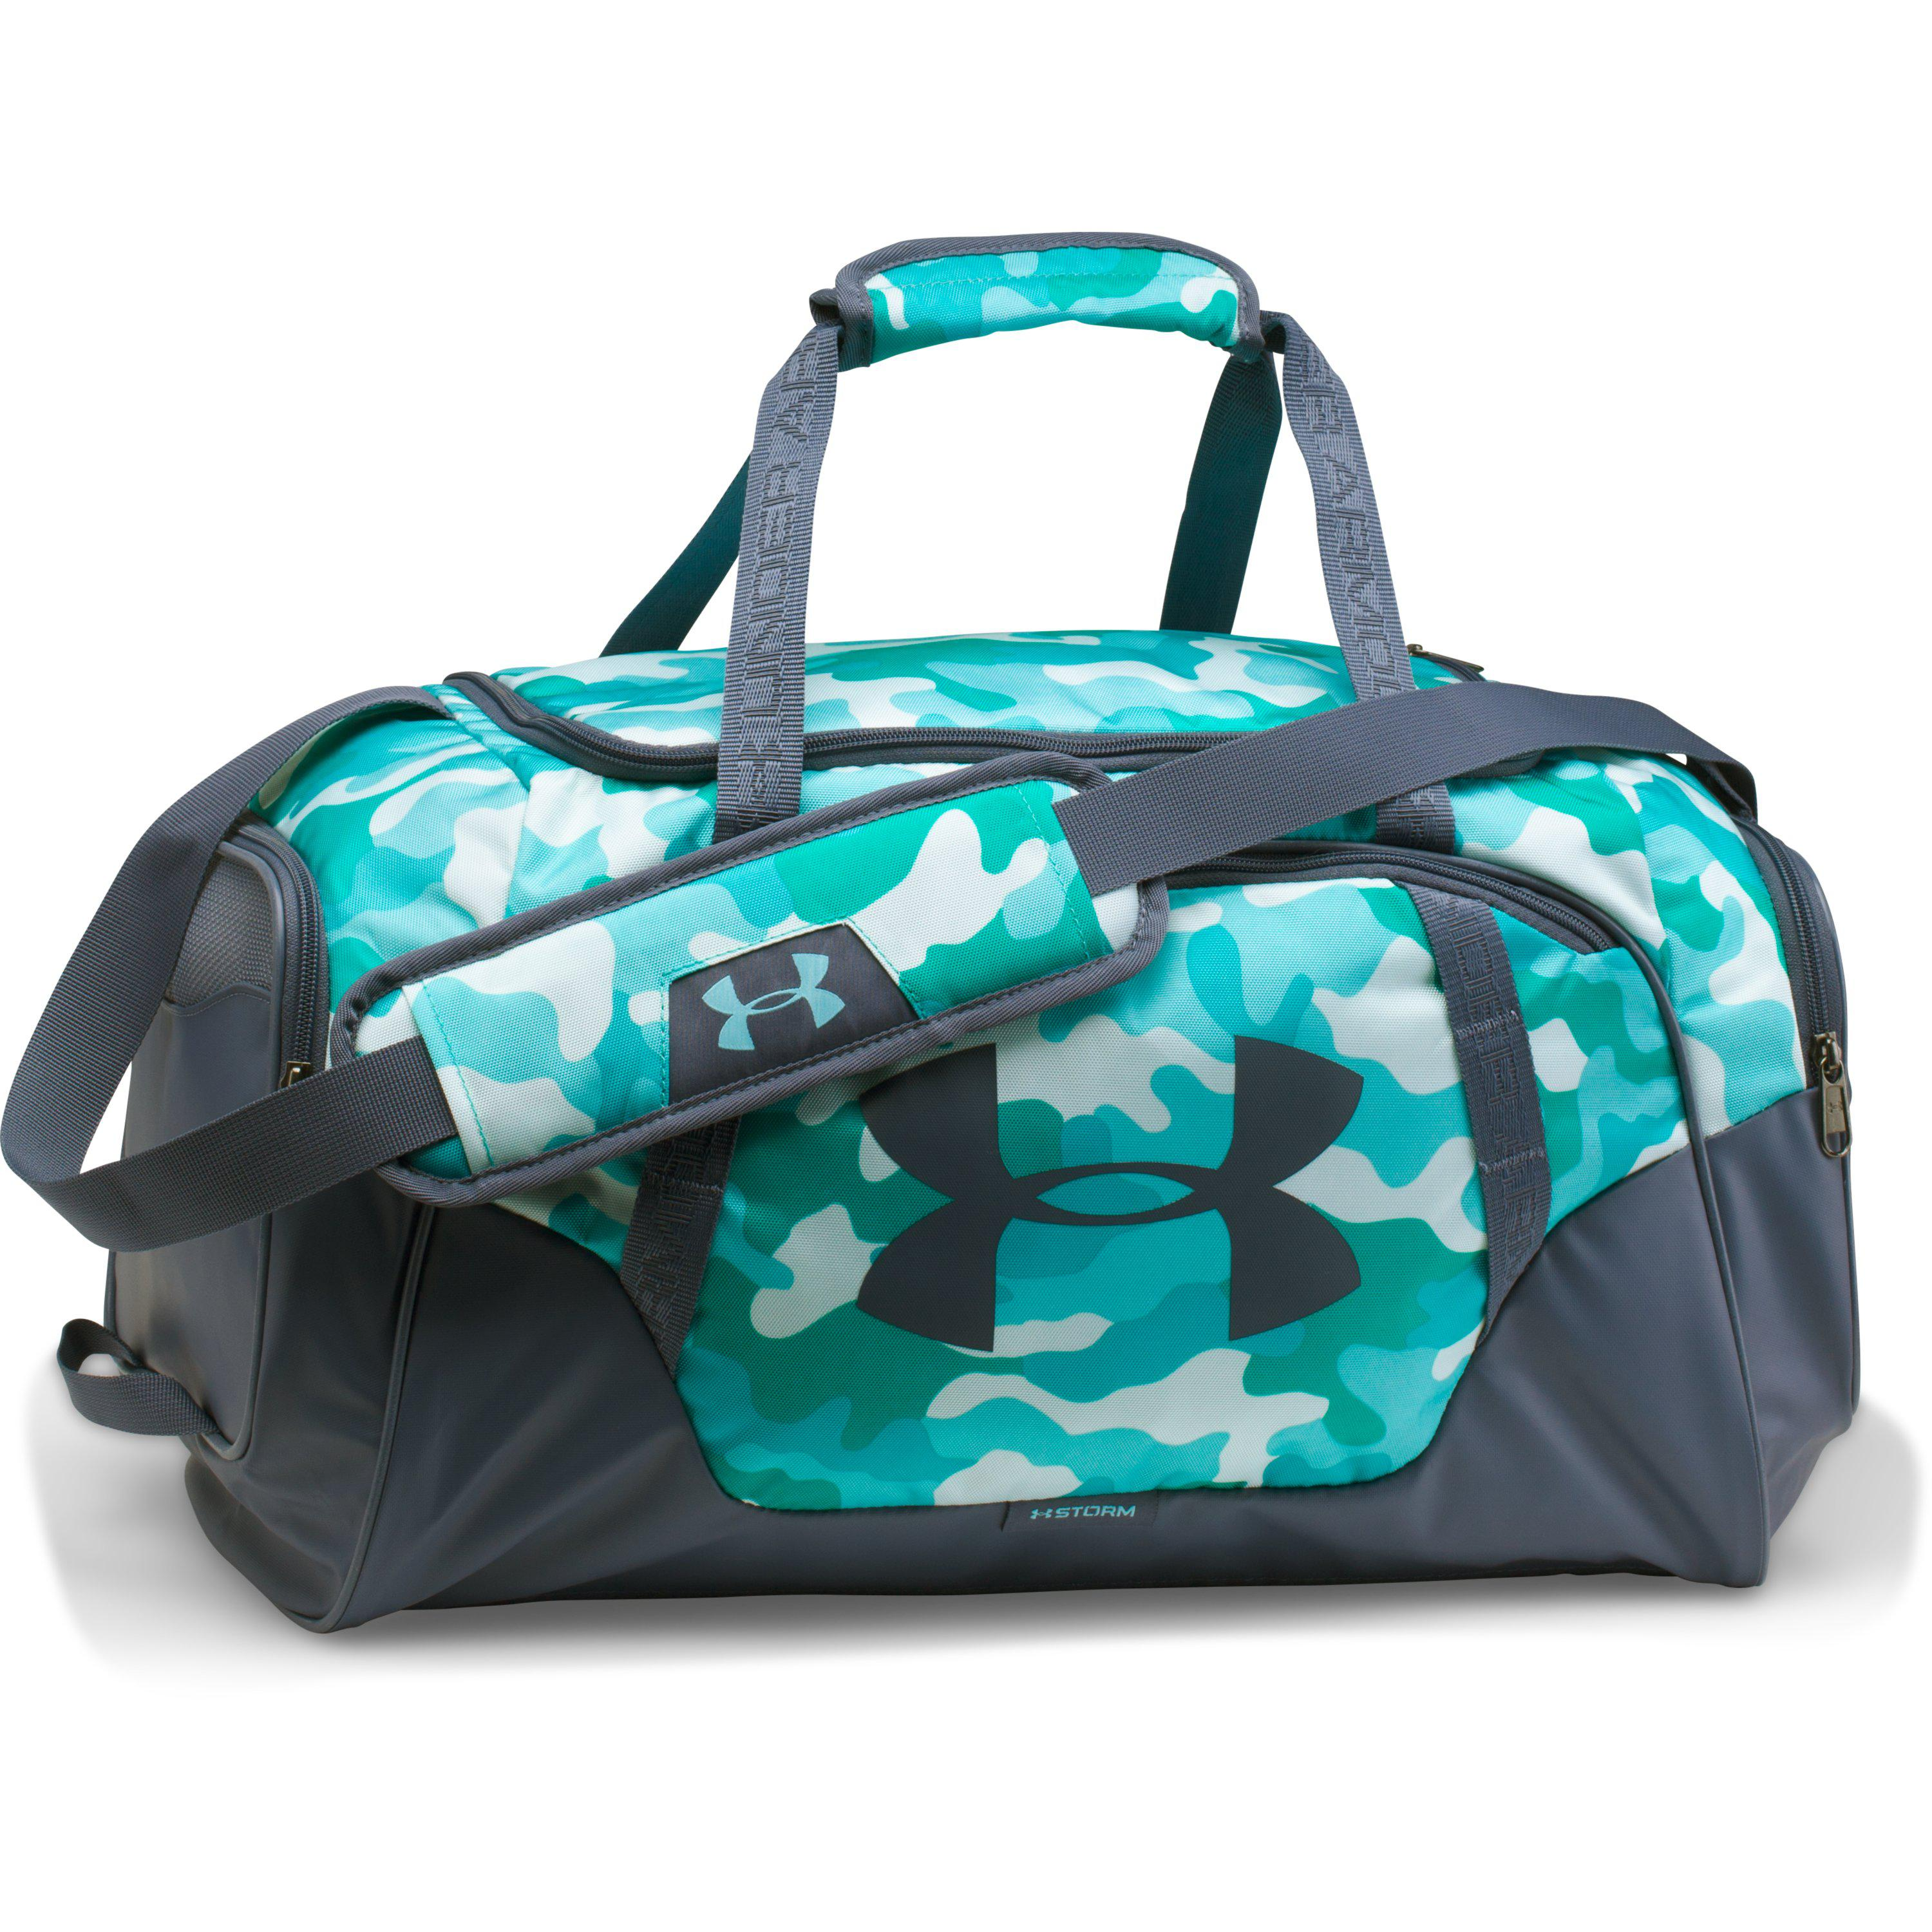 62f319546 Under Armour Undeniable 3.0 Medium Duffle Bag in Blue for Men - Lyst